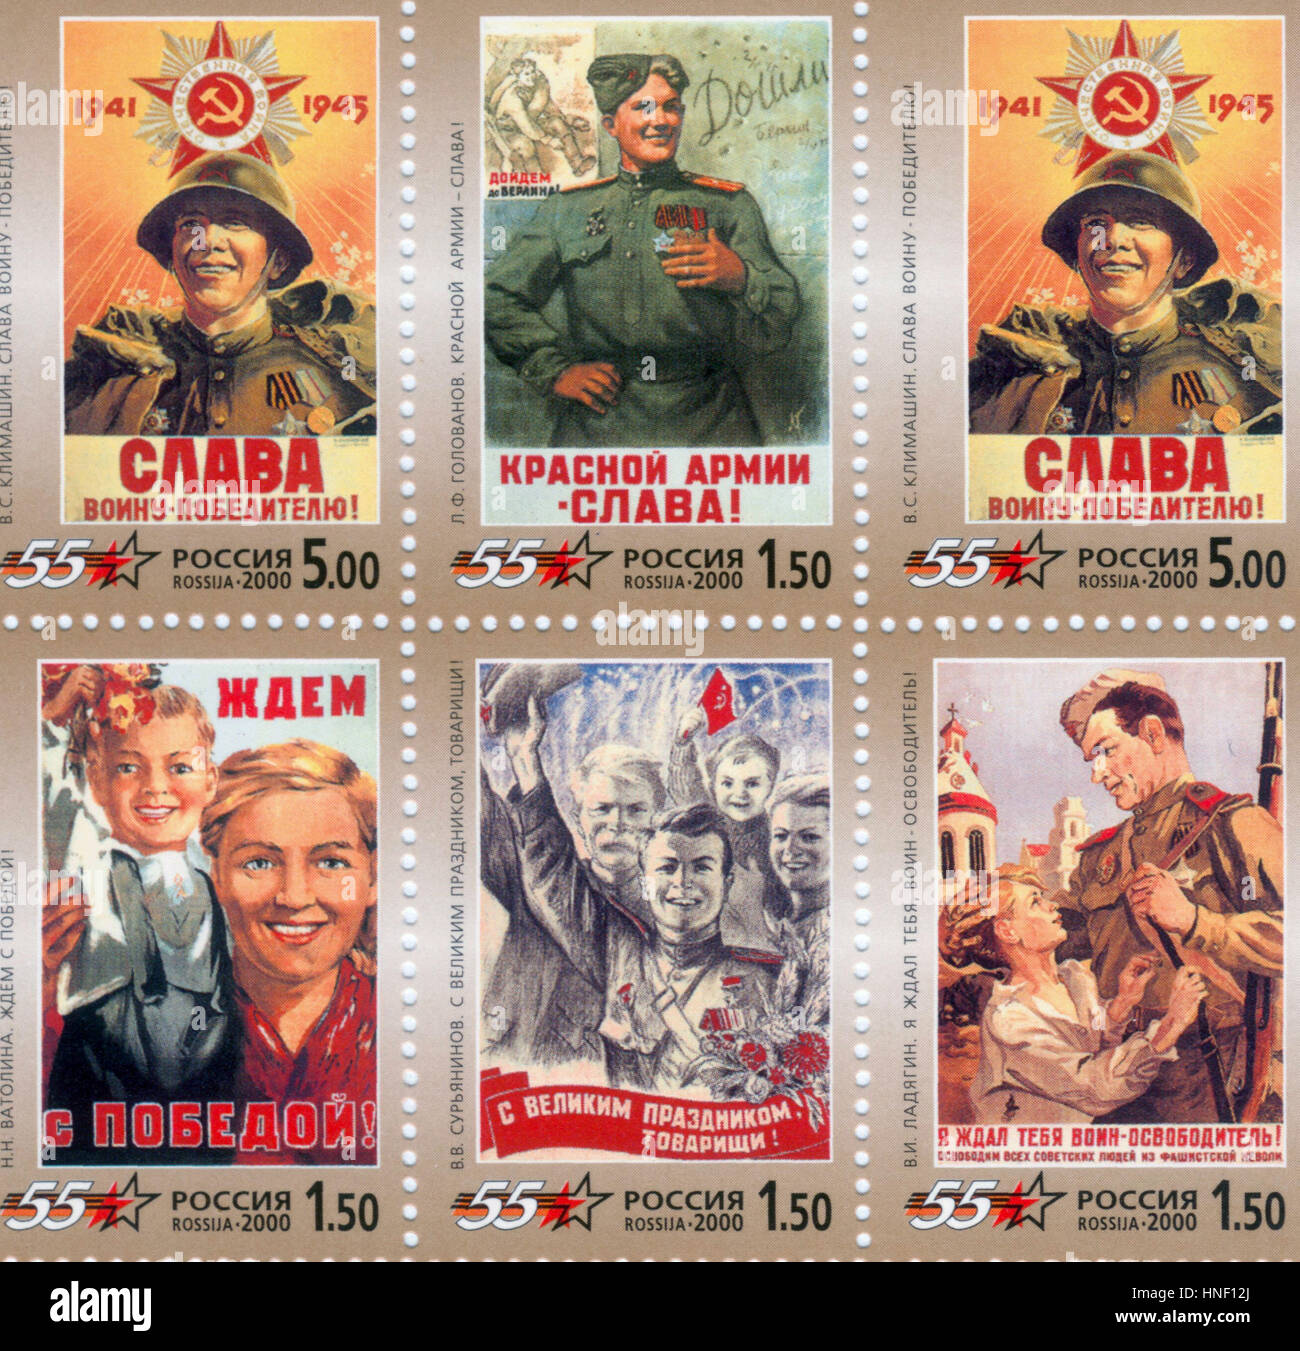 RUSSIAN STAMPS 55TH WAR ANNIVERSARY Stamps issued in  2000 to celebrate the 55th anniversary of the end of the Great - Stock Image